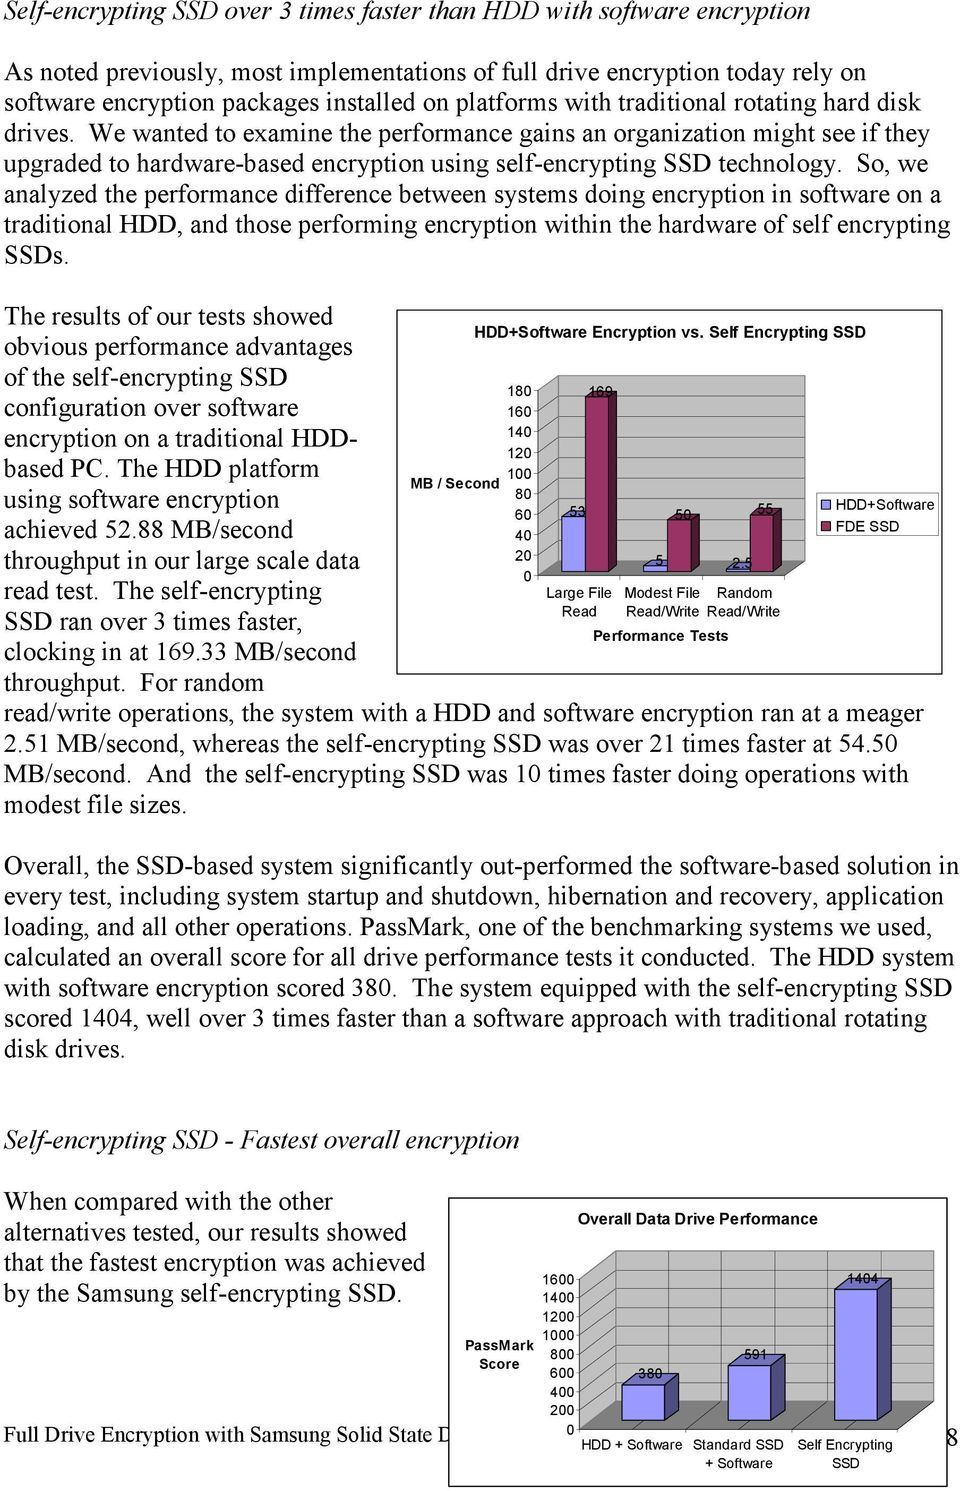 Full Drive Encryption with Samsung Solid State Drives - PDF